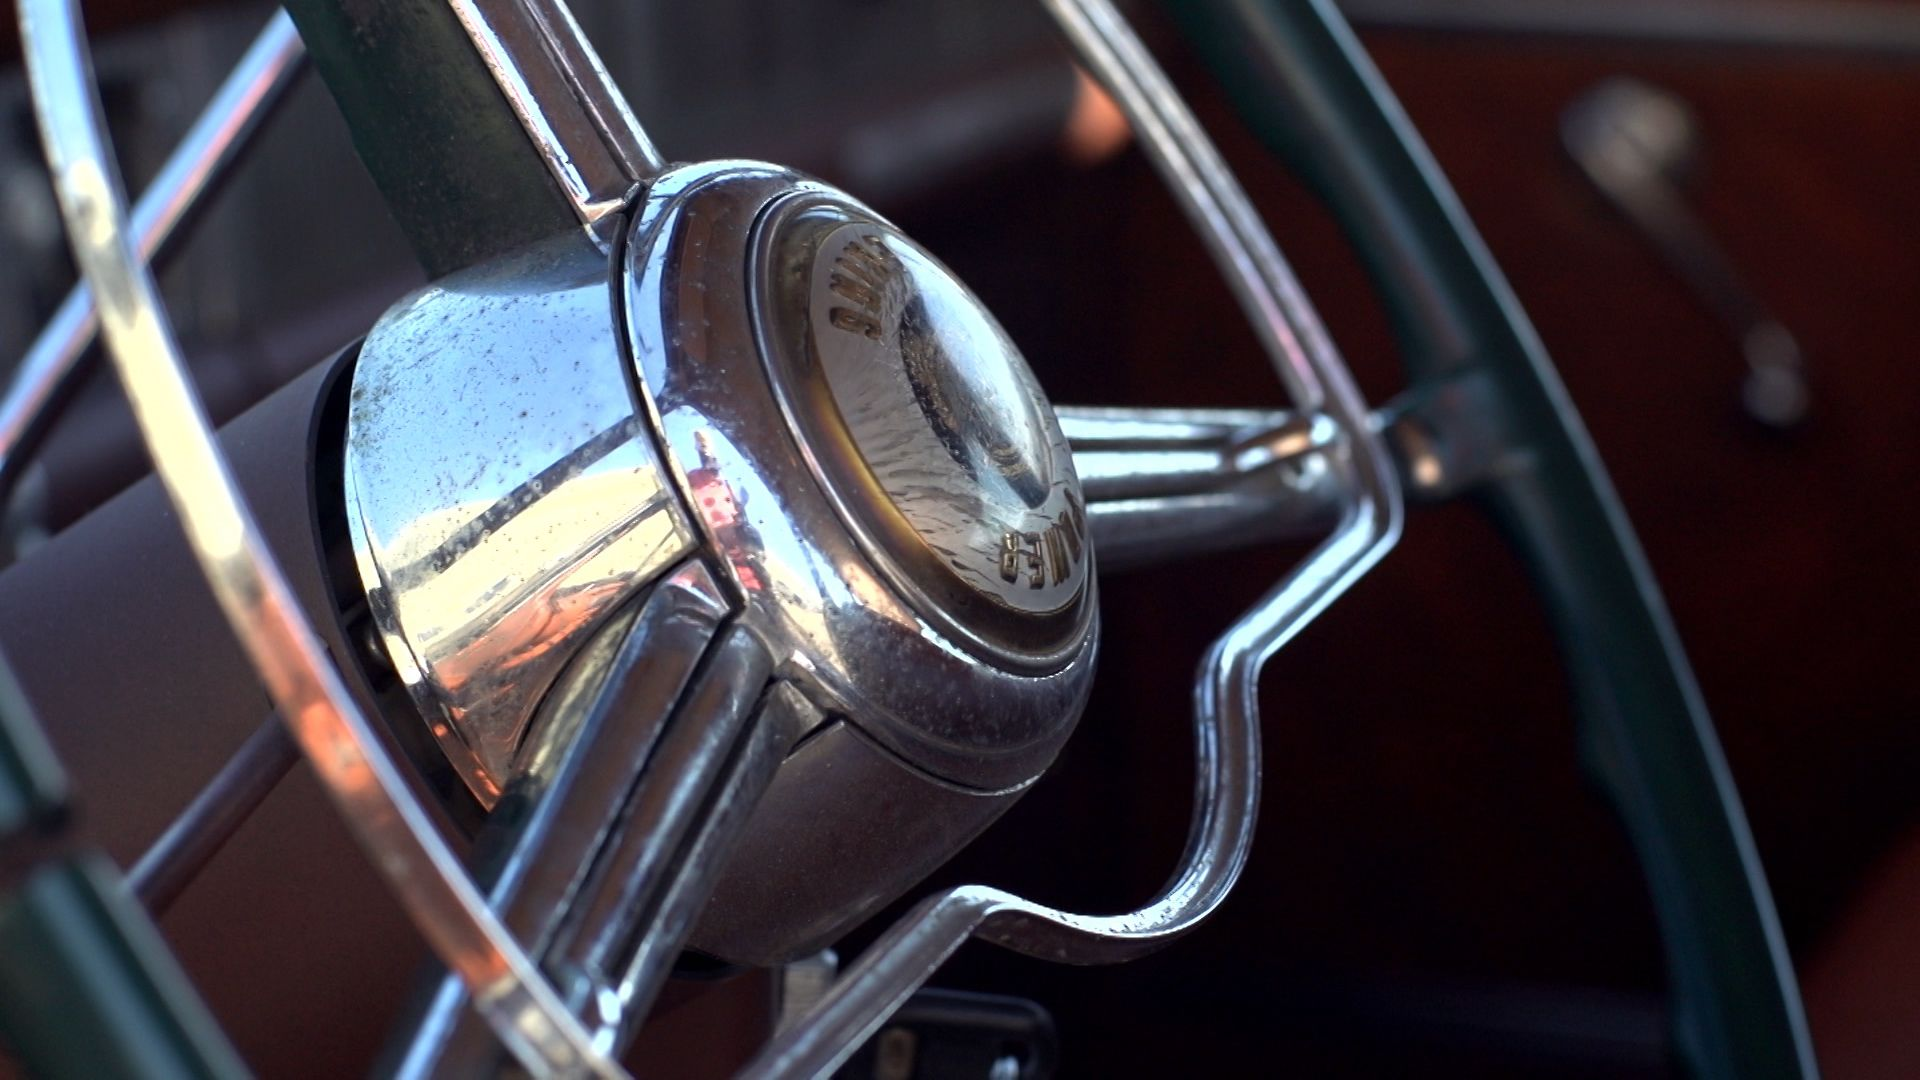 A classic old vintage steering wheel, but all scratched up and with rust accents- perfect for a derelict.